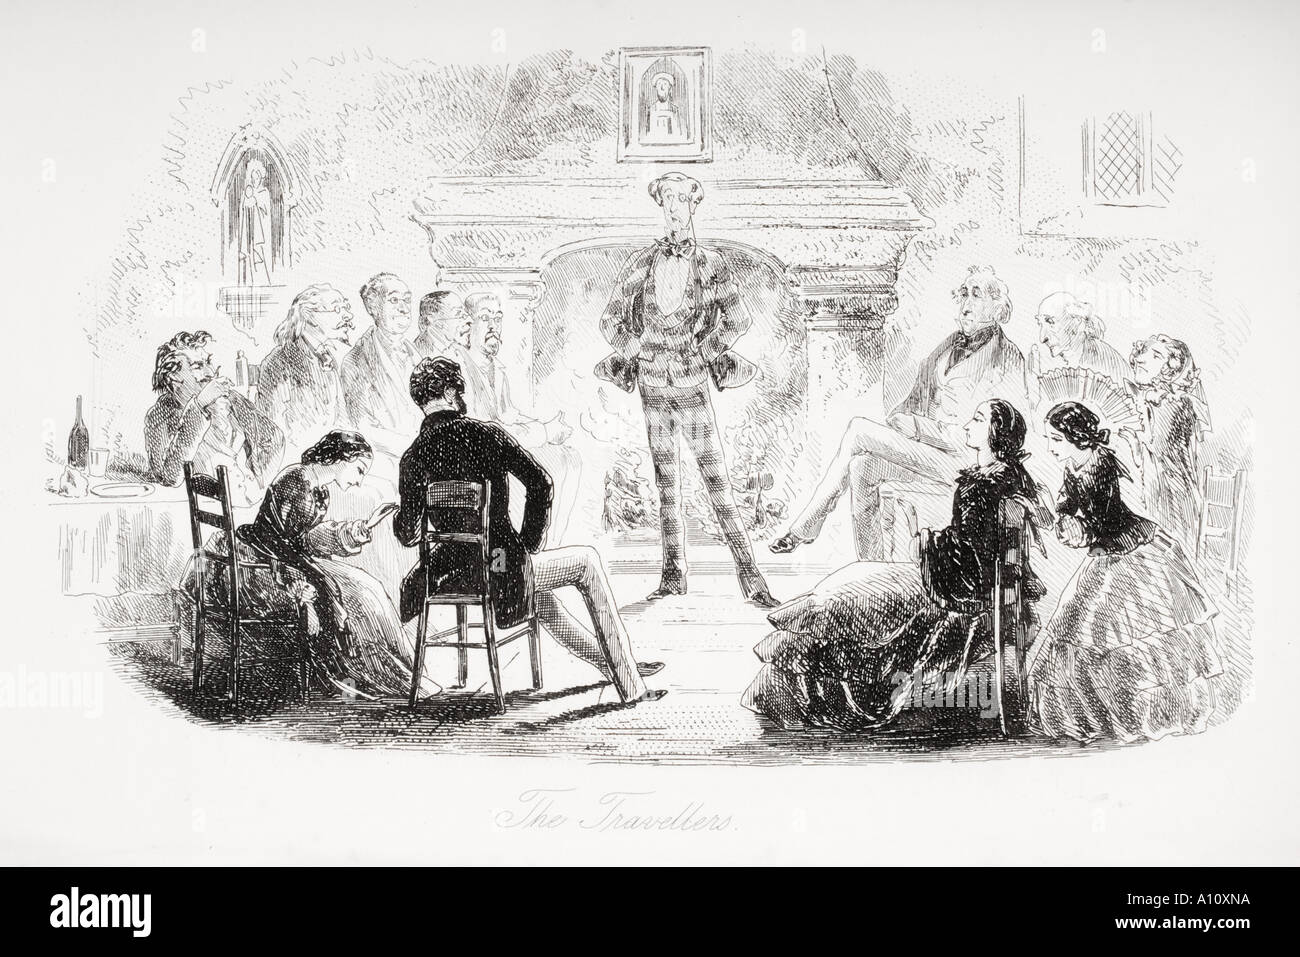 david copperfield novel characters file miss mowcher from david  david copperfield charles dickens illustration stock photos the travellers illustration from the charles dickens novel david dickens character